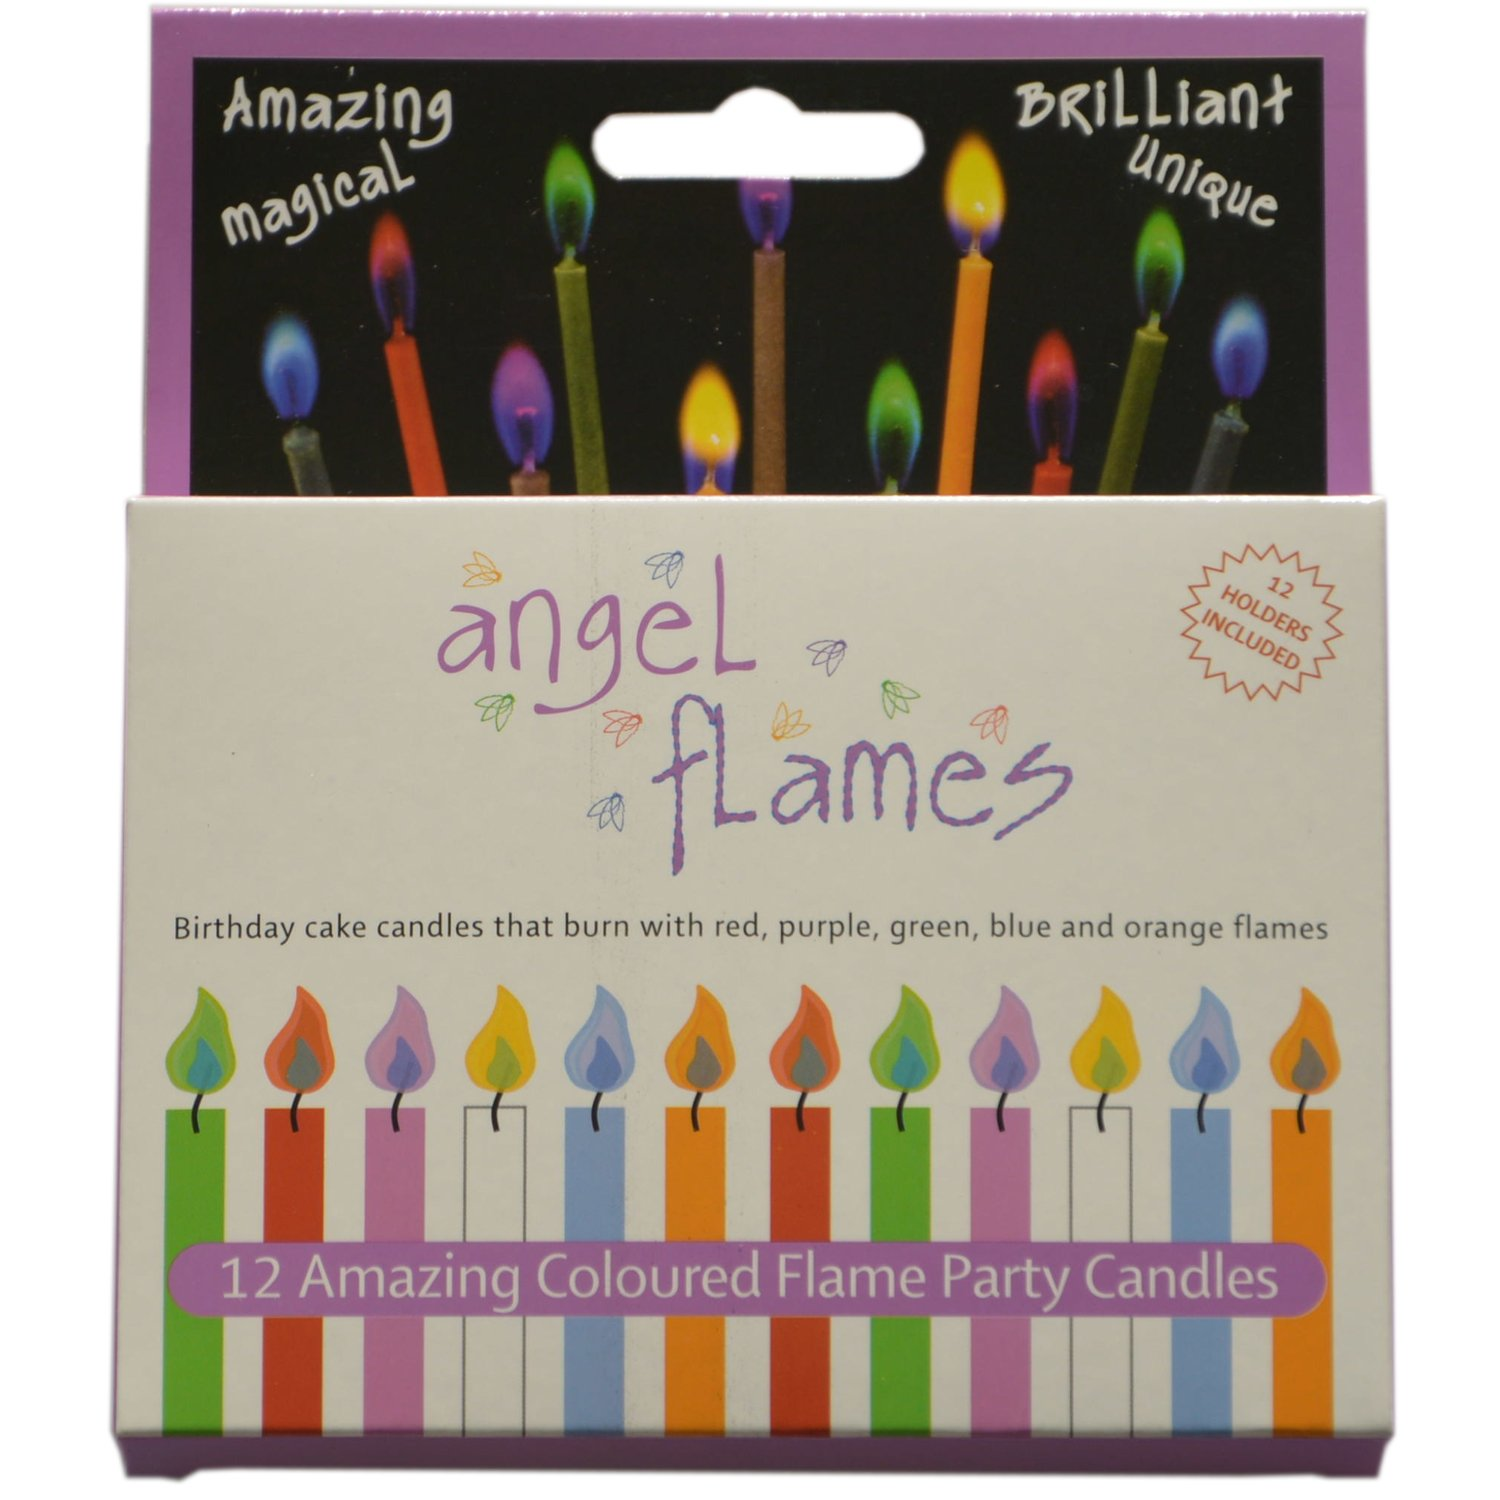 AngleFlames Birthday Candles with Colored Flames (12 per box, holders included) (12, Medium)